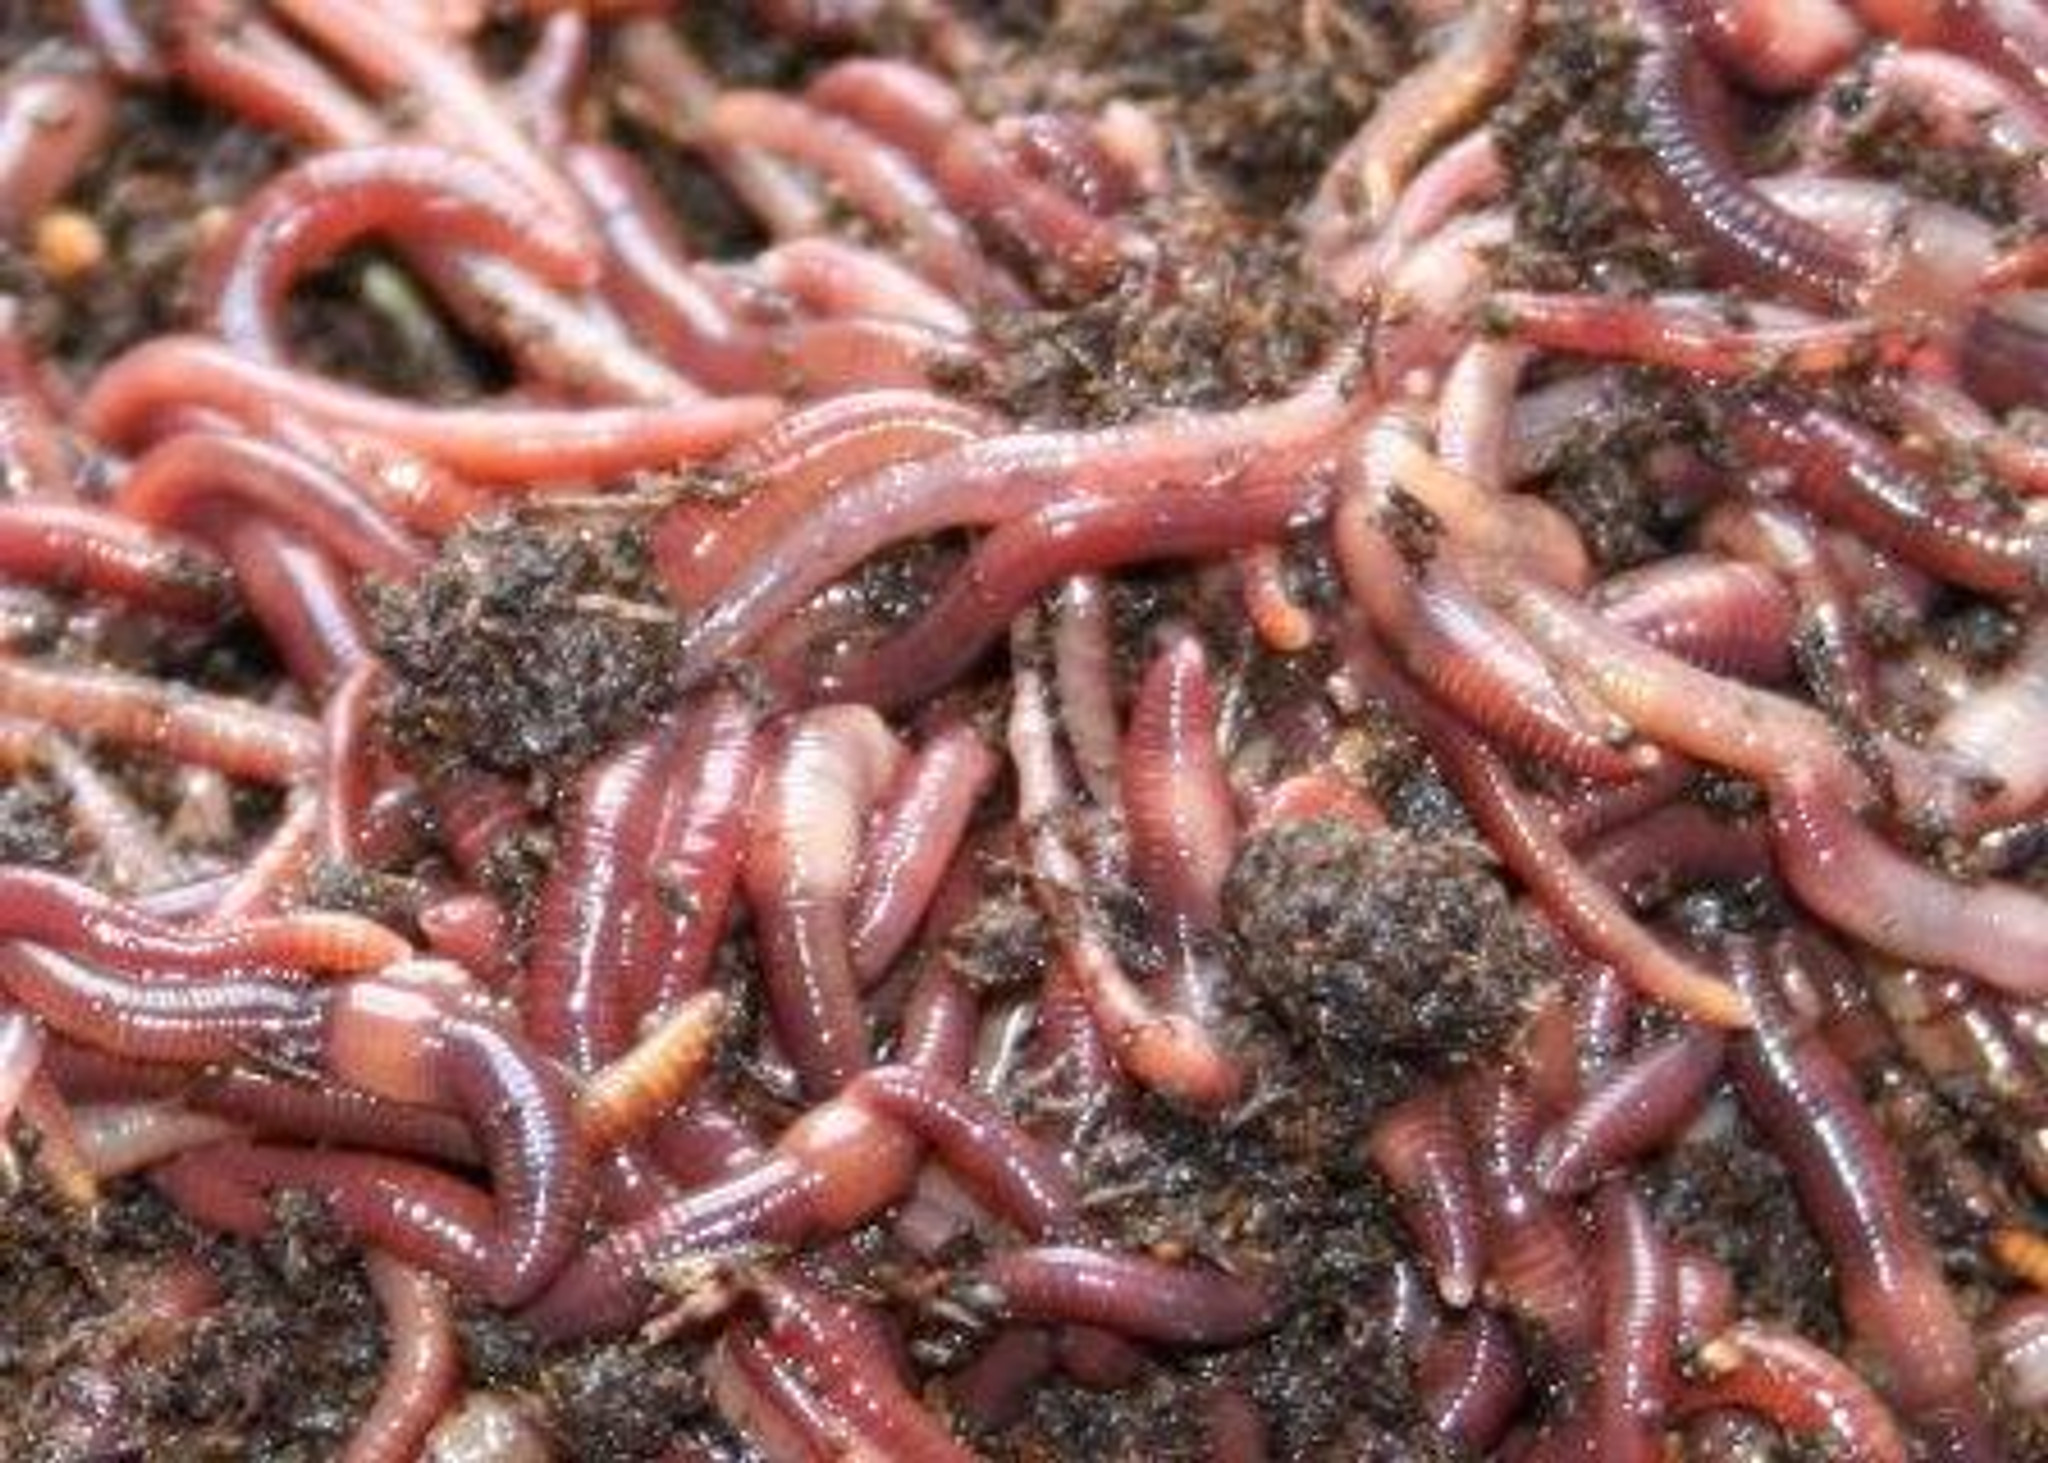 worms Wholesale Red Wiggler 4 pounds